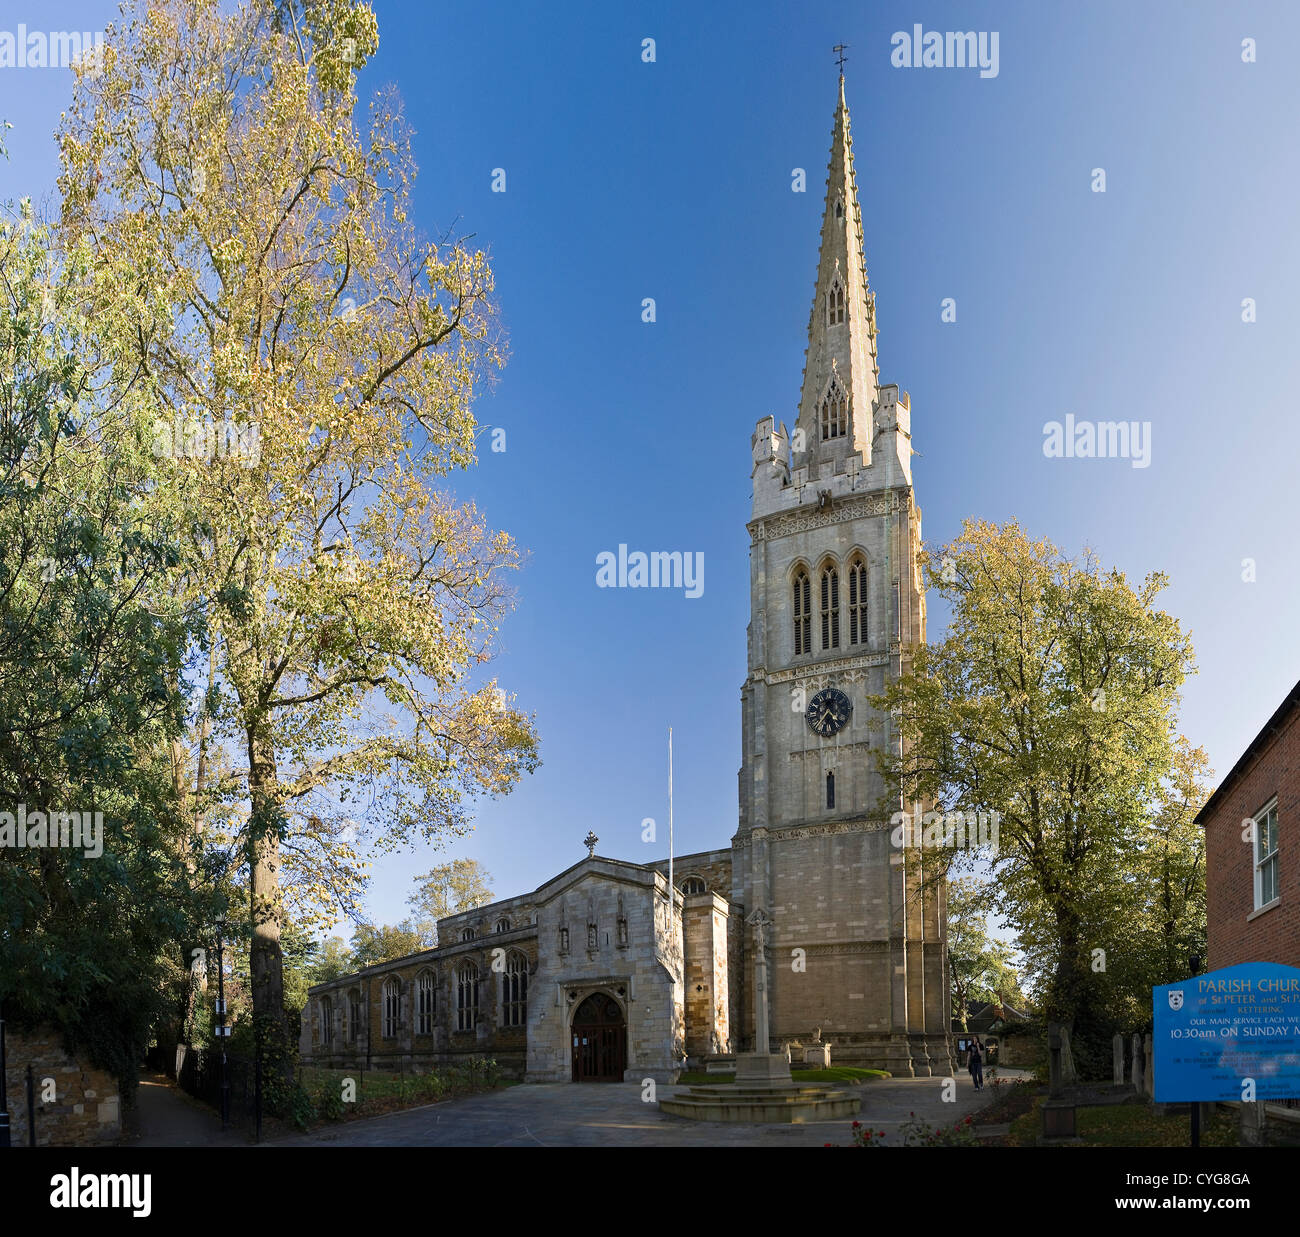 The Parish Church of St. Peter and St. Paul in Kettering, Northamptonshire, UK - Stock Image